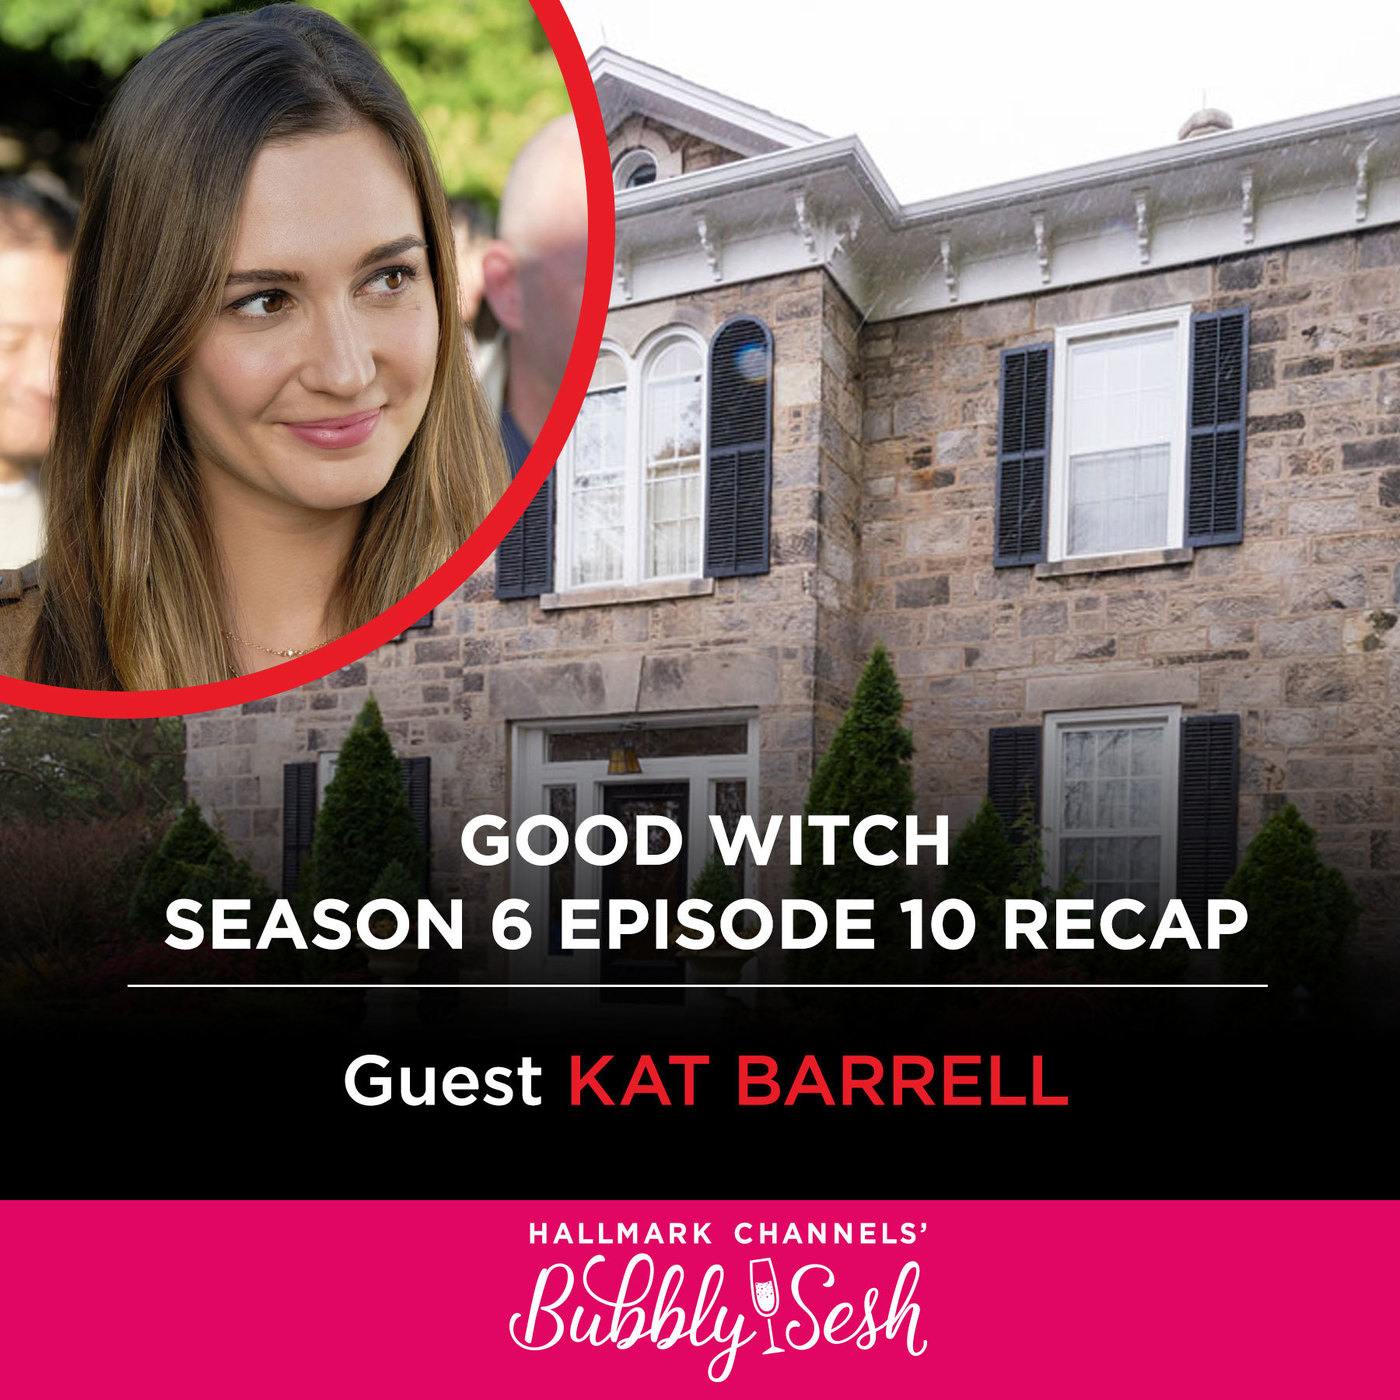 Good Witch Season 6, Episode 10 Recap with Guest Kat Barrell